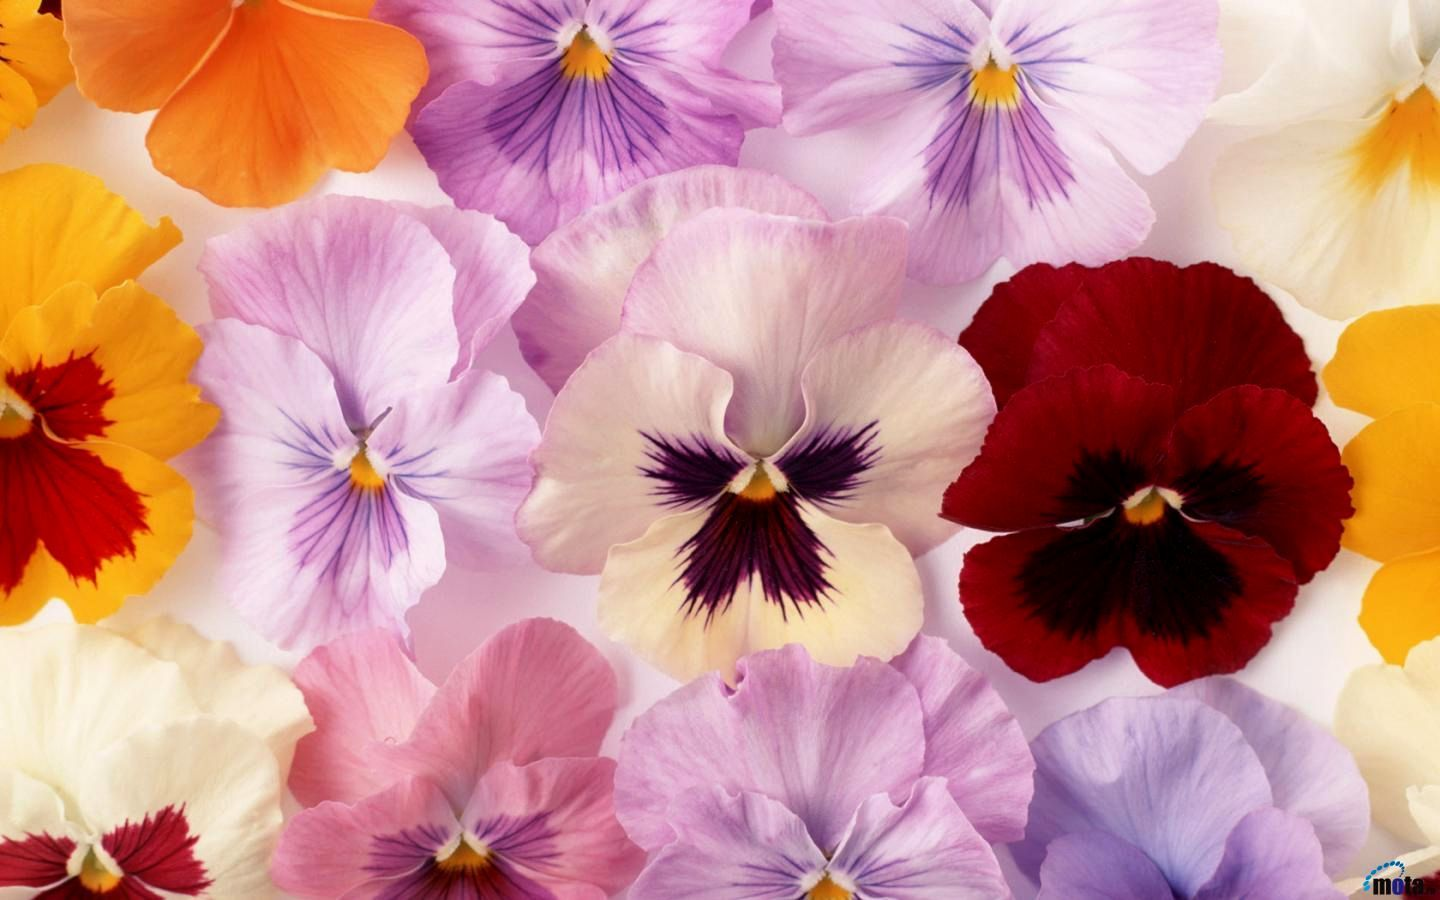 Beautiful fresh flowers pictures visit link for more image beautiful fresh flowers pictures visit link for more image izmirmasajfo